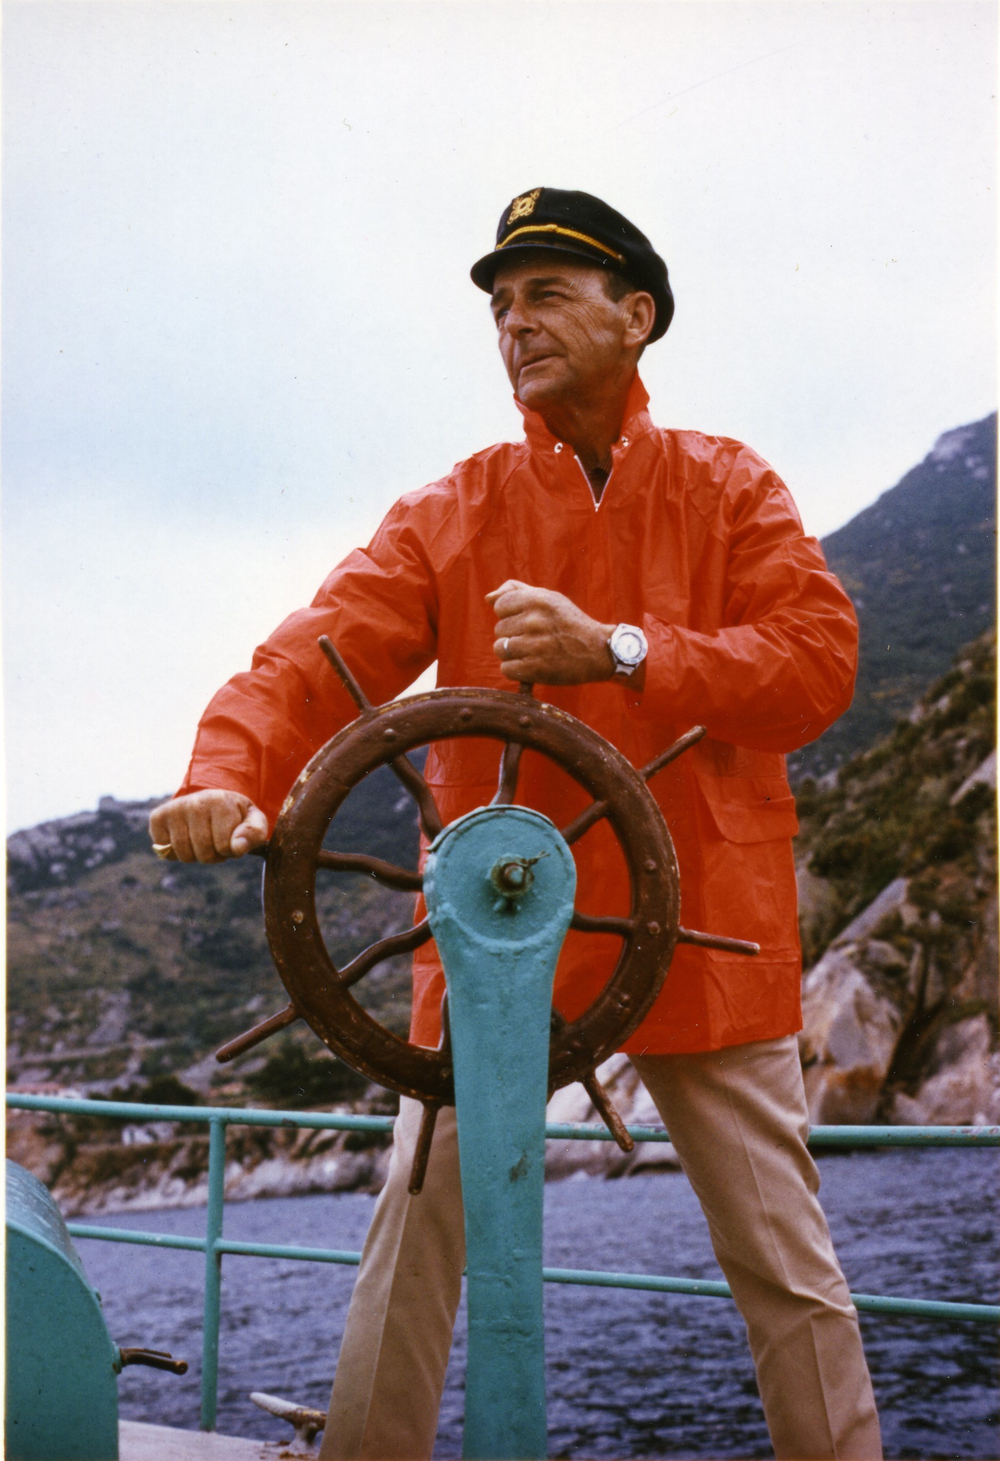 Squale founder Charles Von Buren (image courtesy of Page and Cooper)